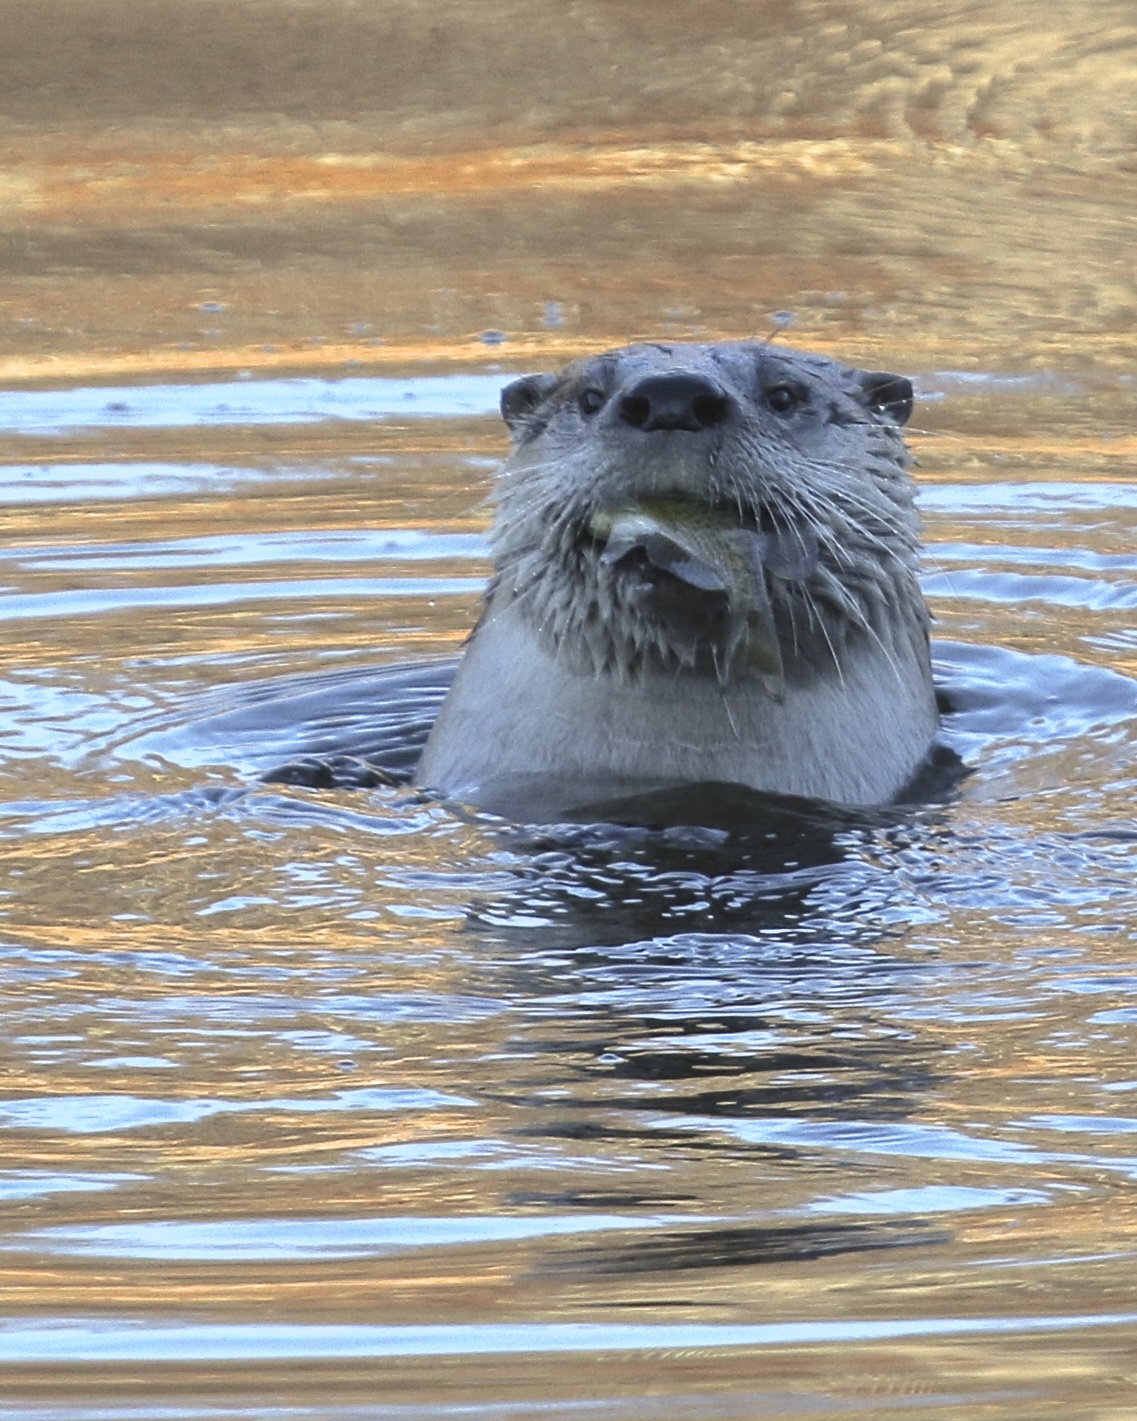 ~One of four River Otters enjoys a fish, Orange County, NY 12/6/15.~